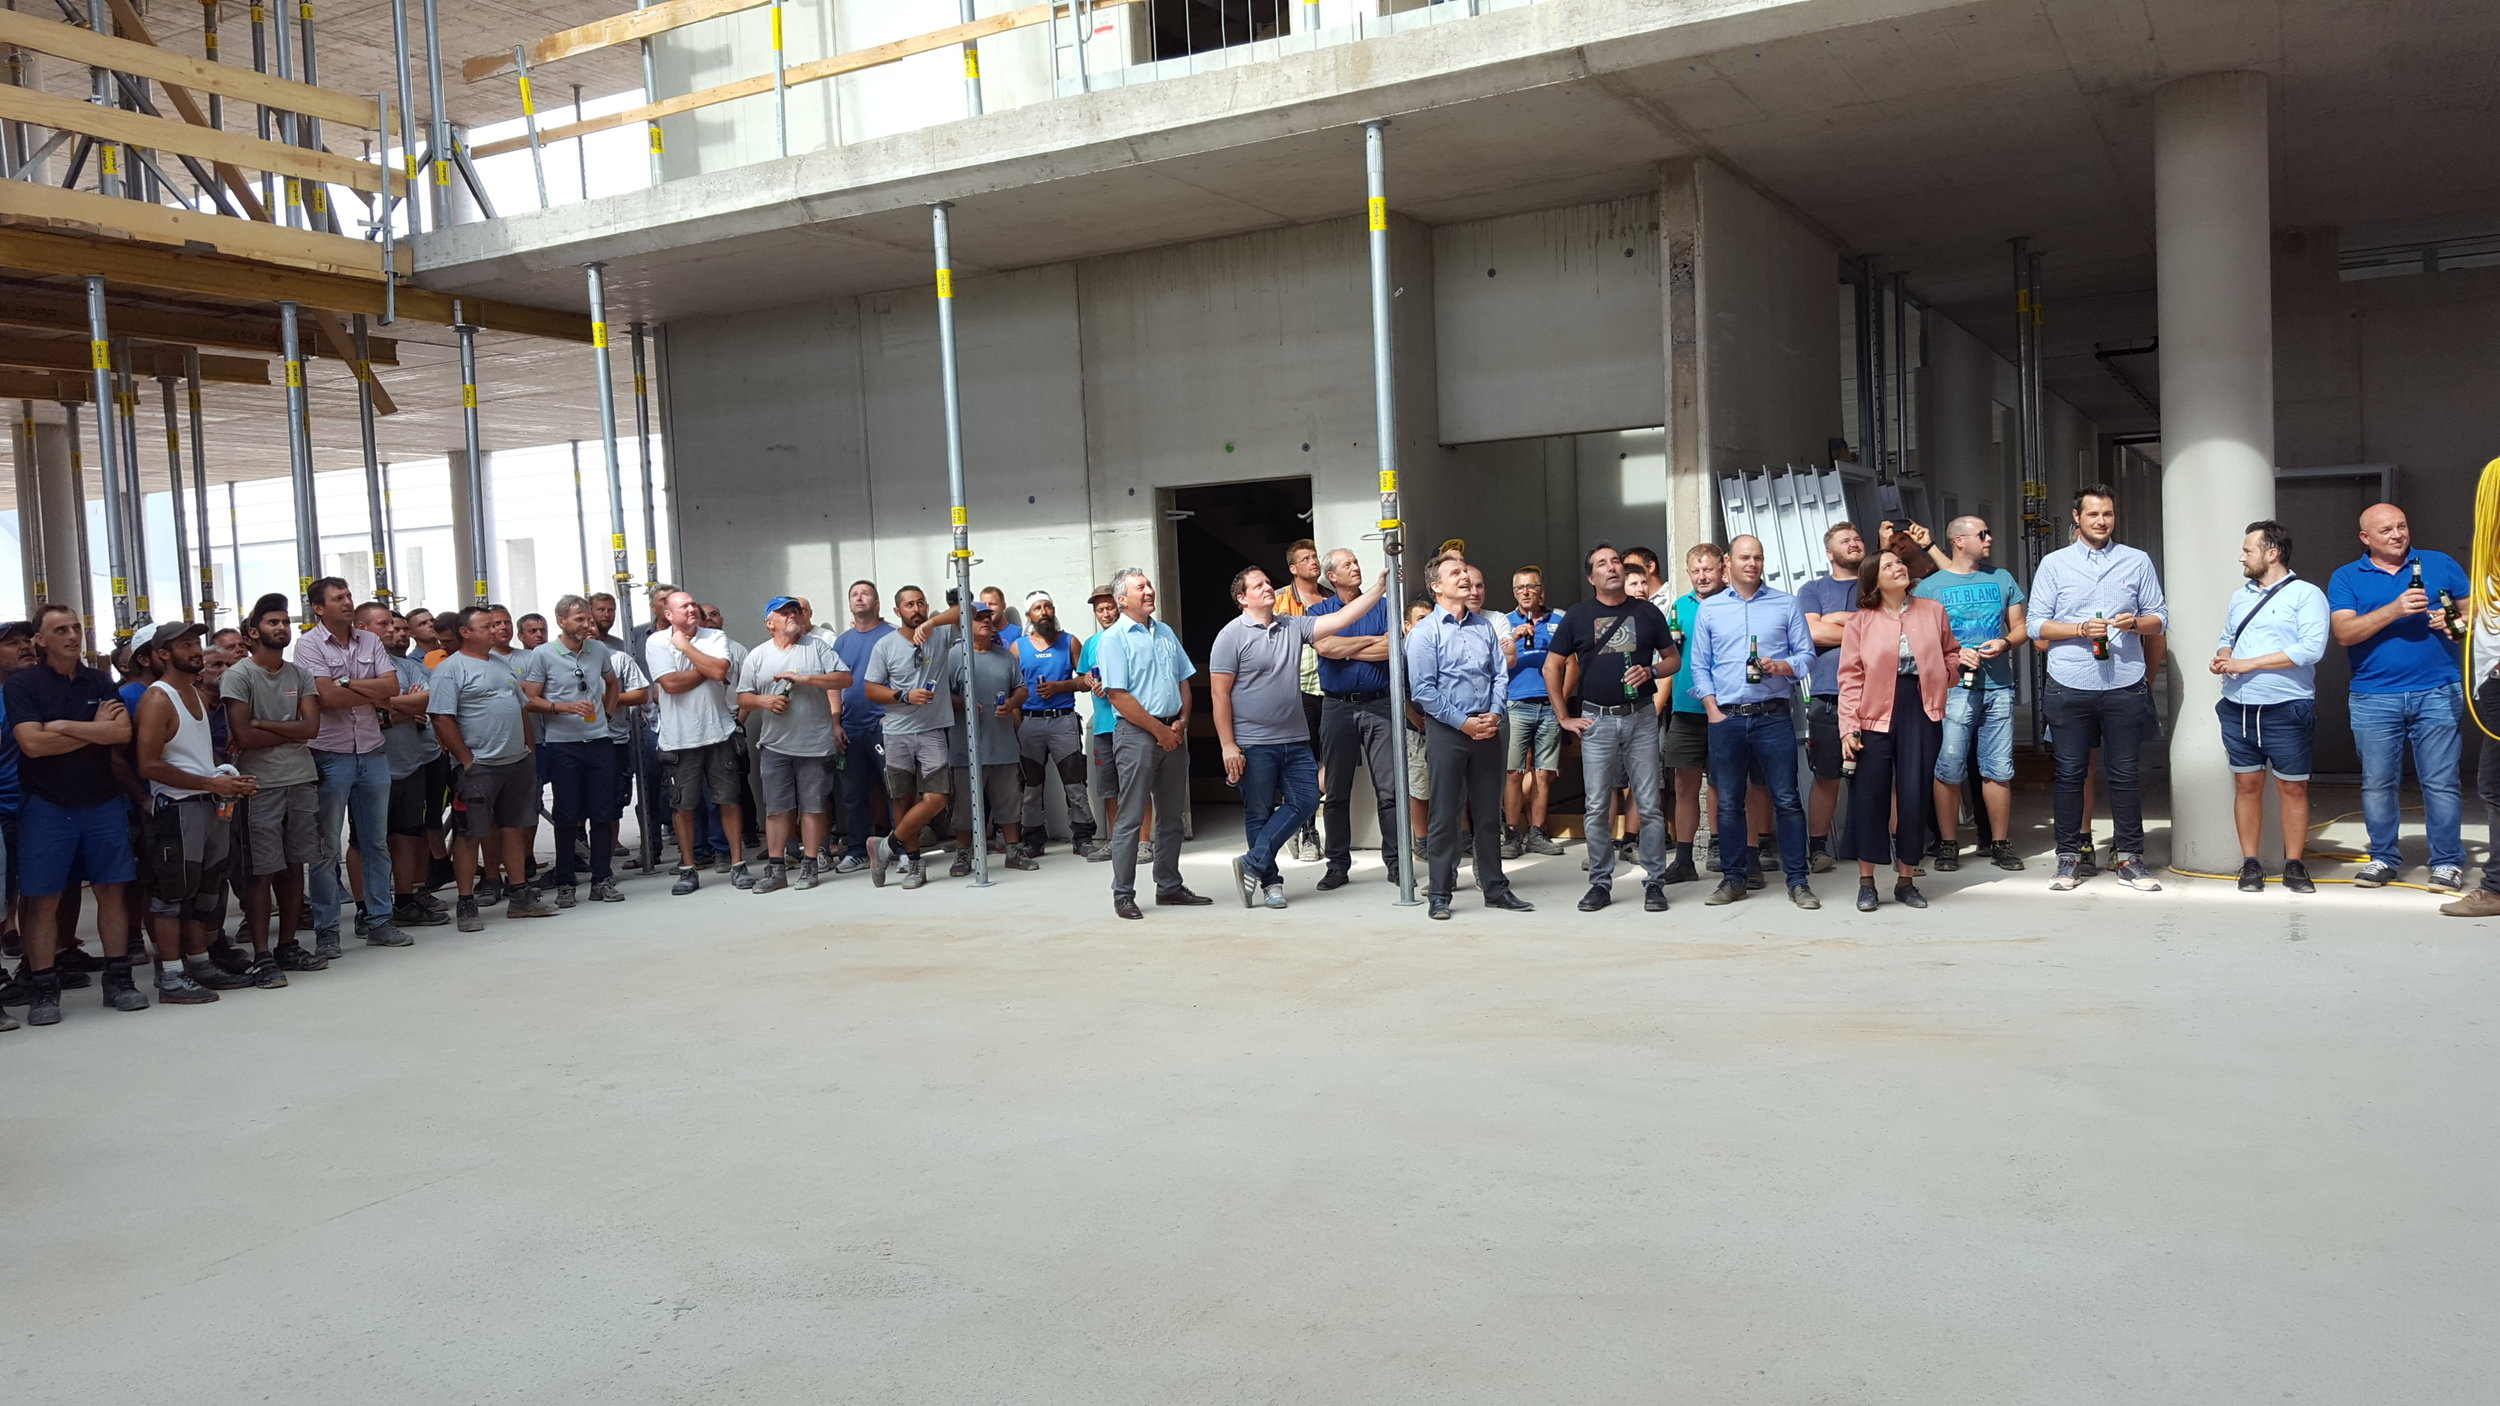 Bika at the topping out ceremony of the factory building she designed with Some Place, 2018